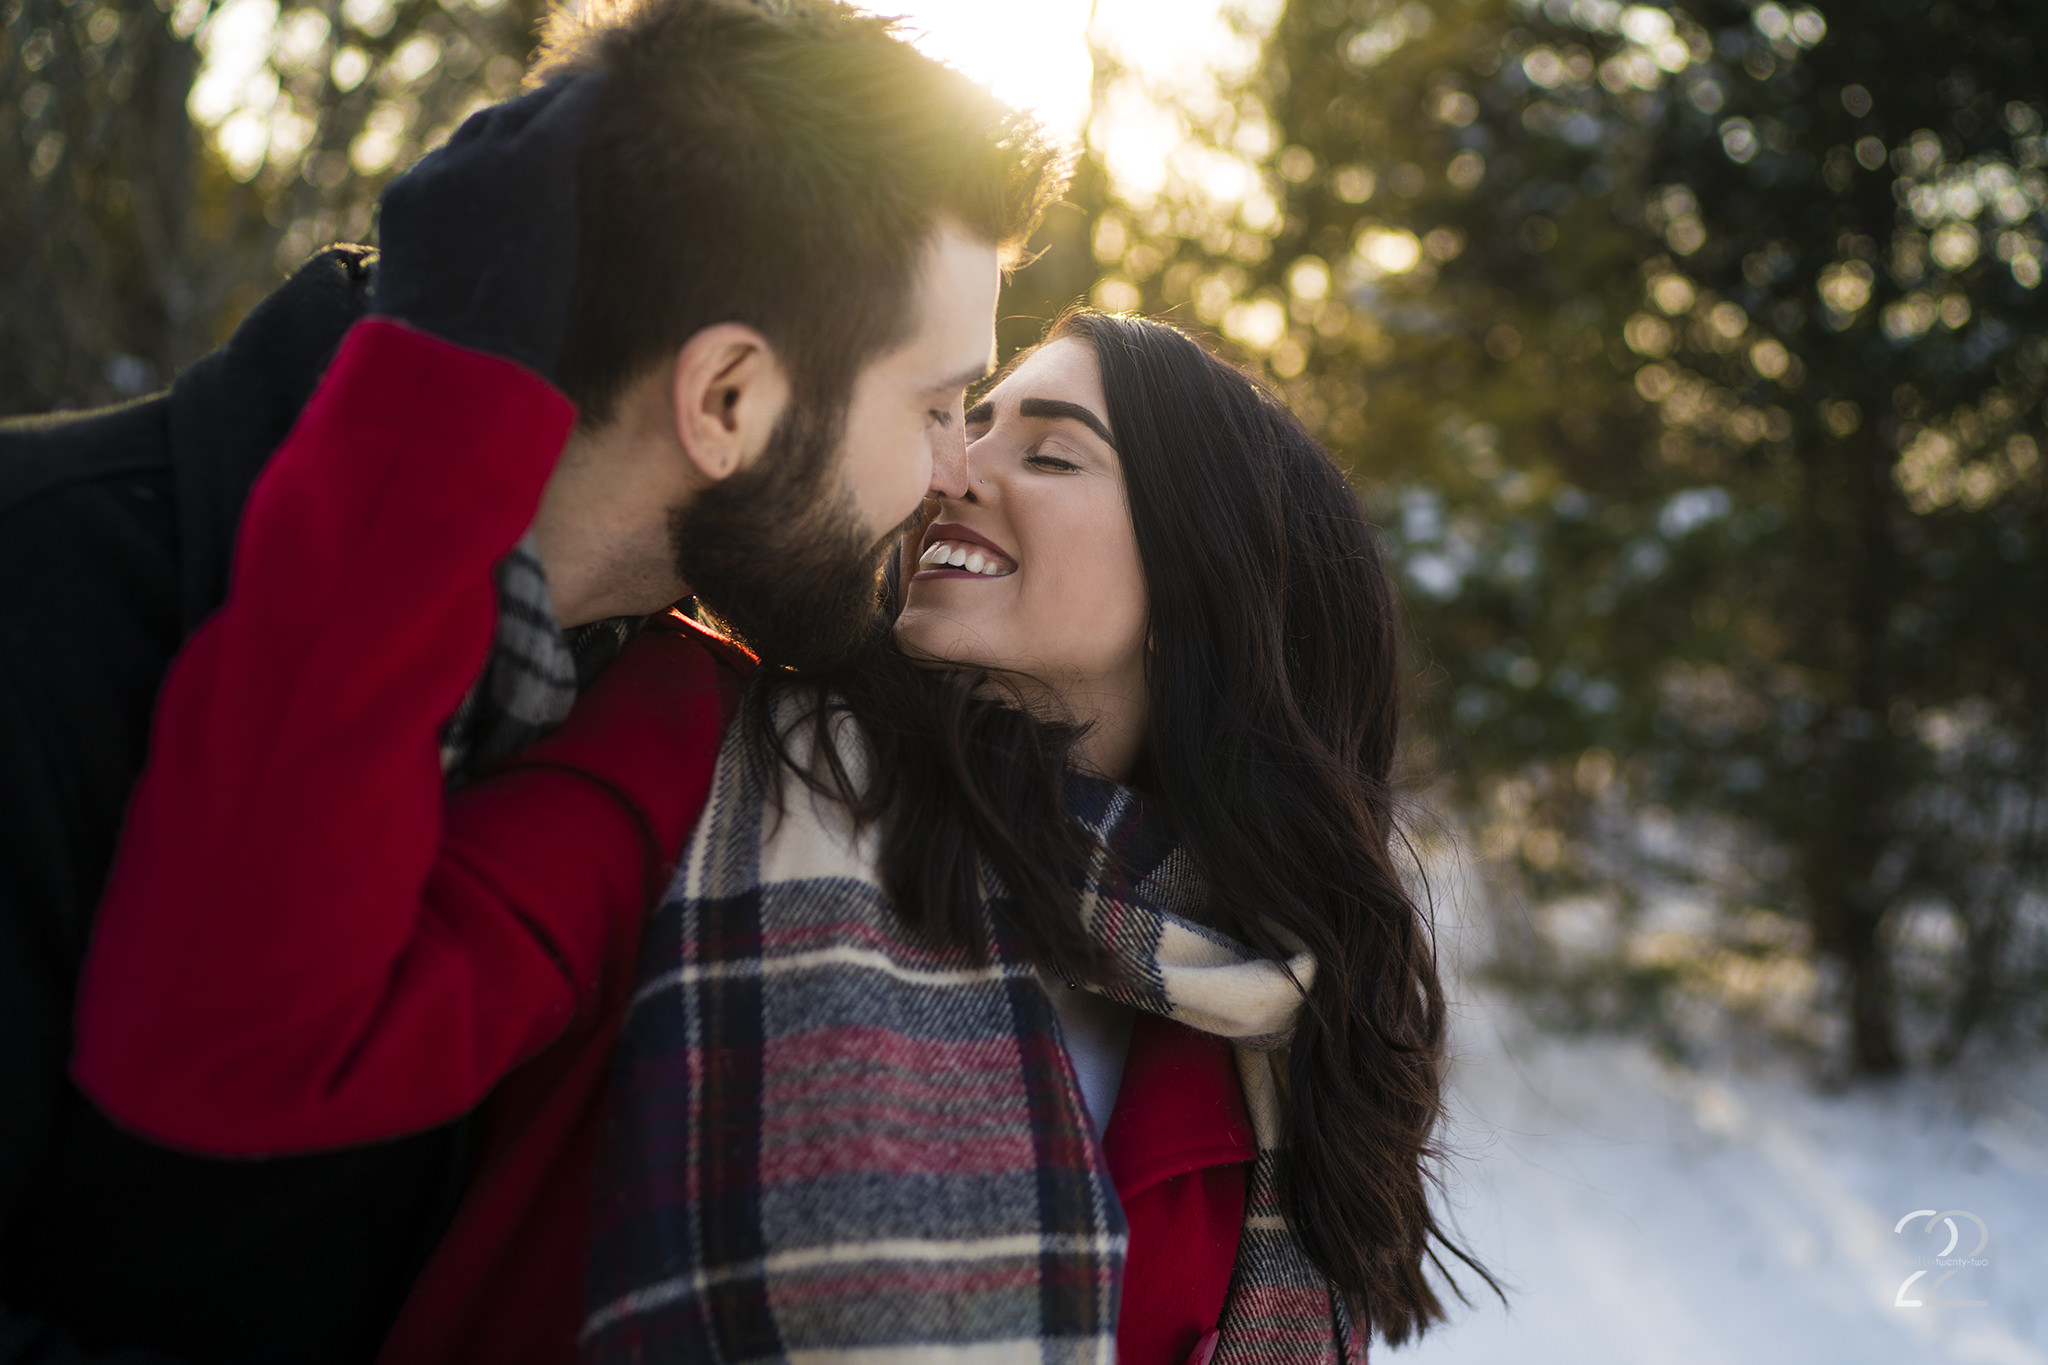 Woman pulls a man in for a kiss, both smiling, in the snow at sunset at Oakes Quarry Park by Dayton Wedding Photographer Studio 22 Photography